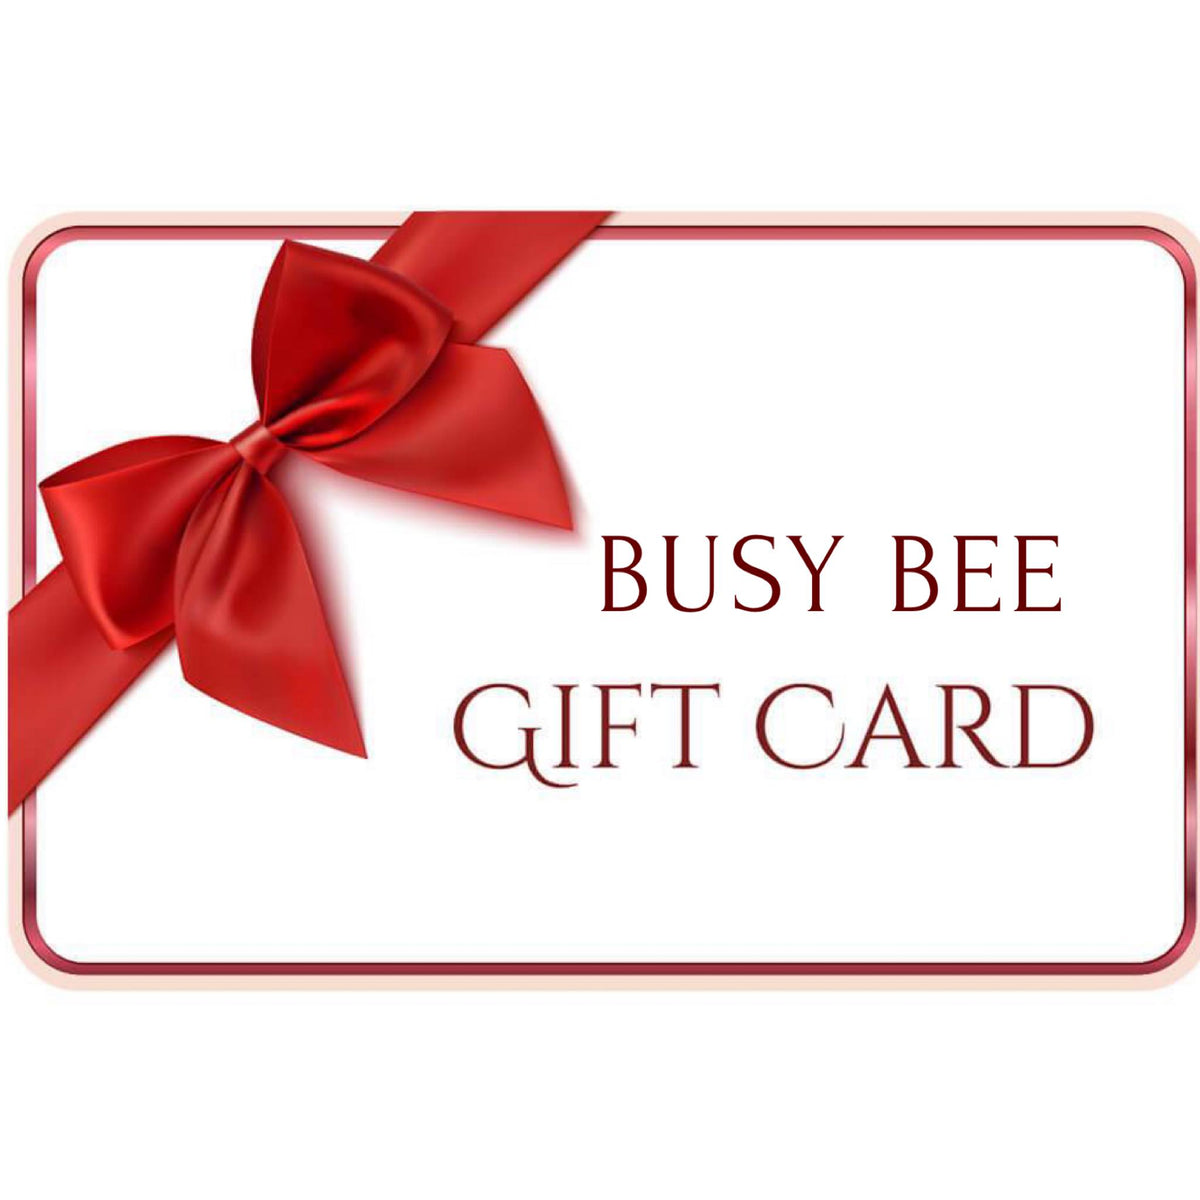 Busy Bee Gift Voucher